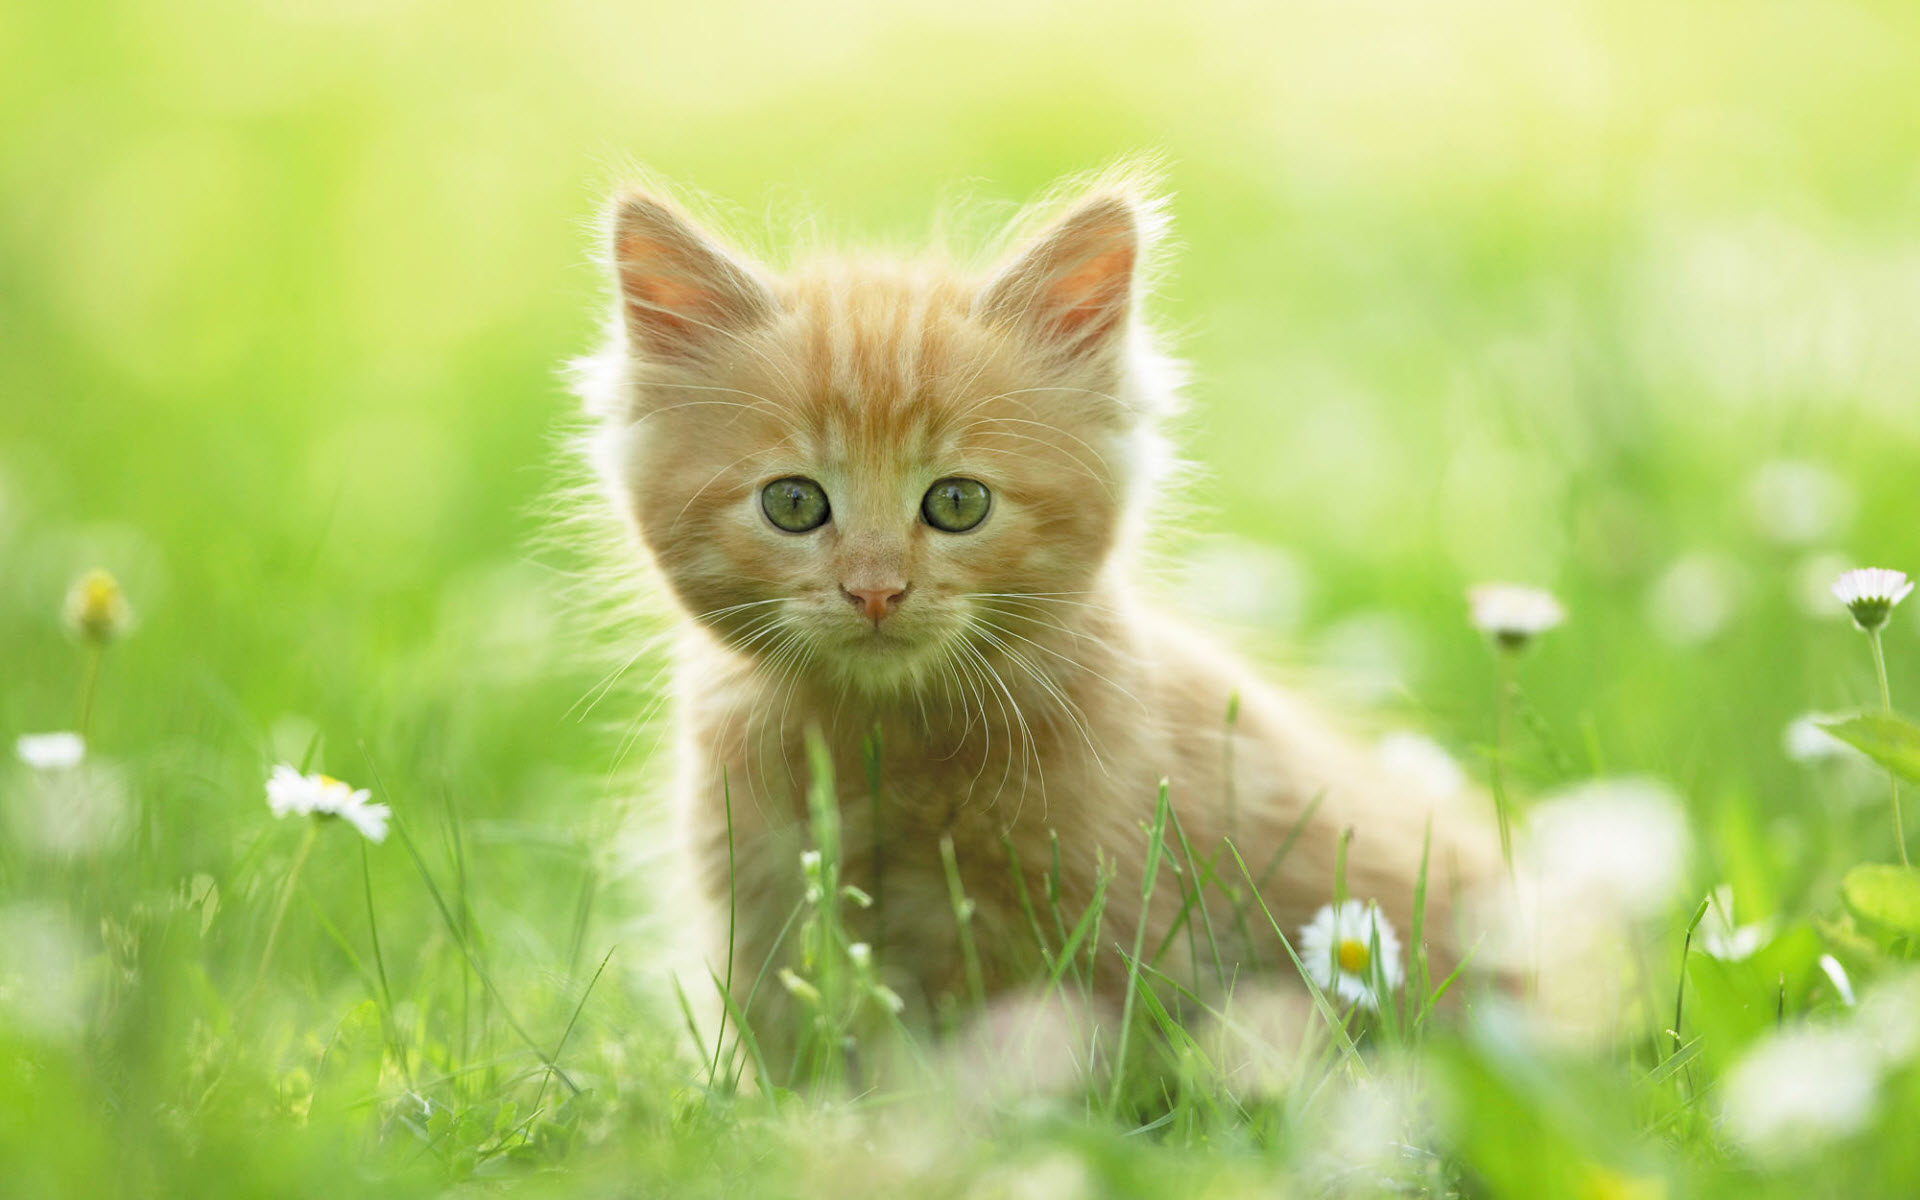 Curious Cute Kittens HD Wallpapers   Design Hey Design Hey 1920x1200